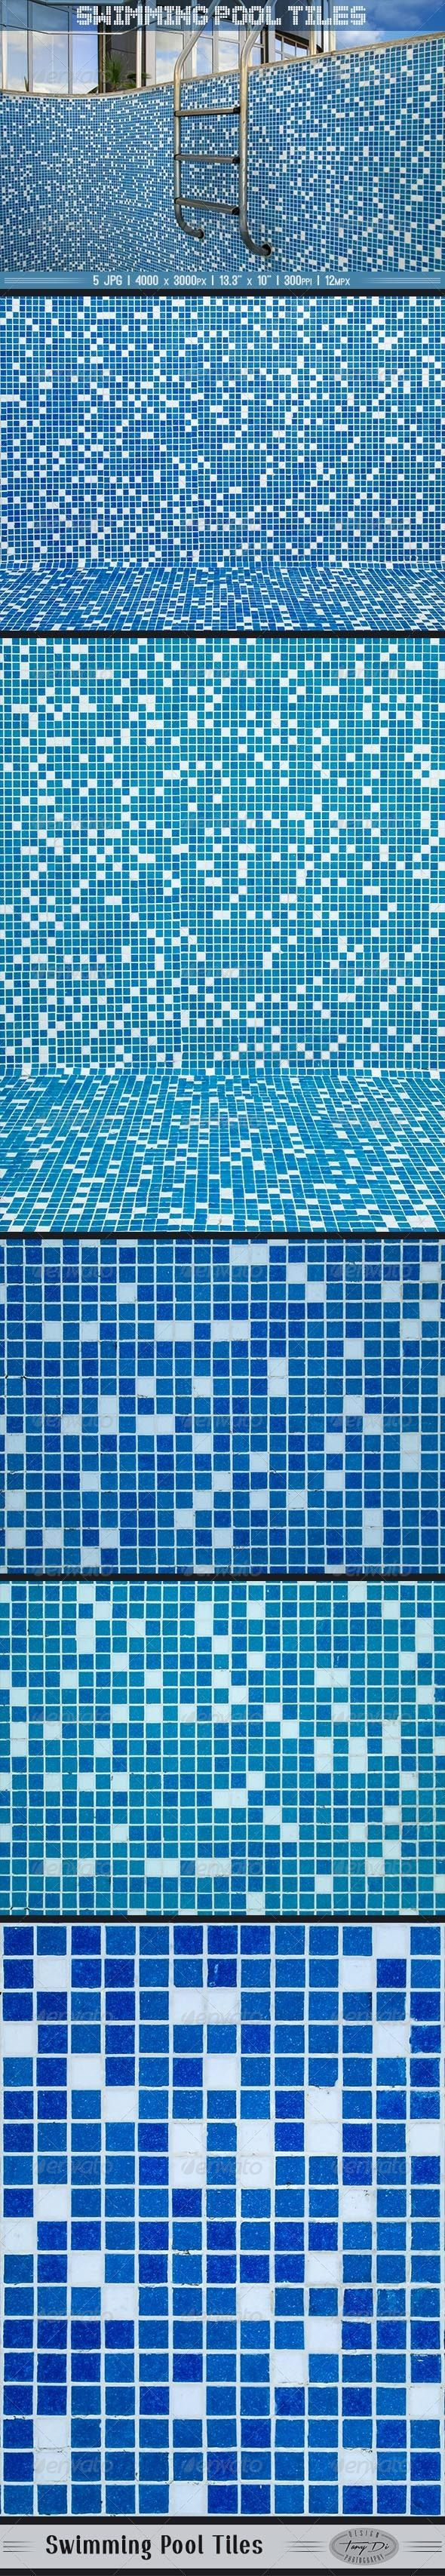 The 25+ Best Swimming Pool Tiles Ideas On Pinterest | Small Pools, Plunge  Pool And Lap Pools